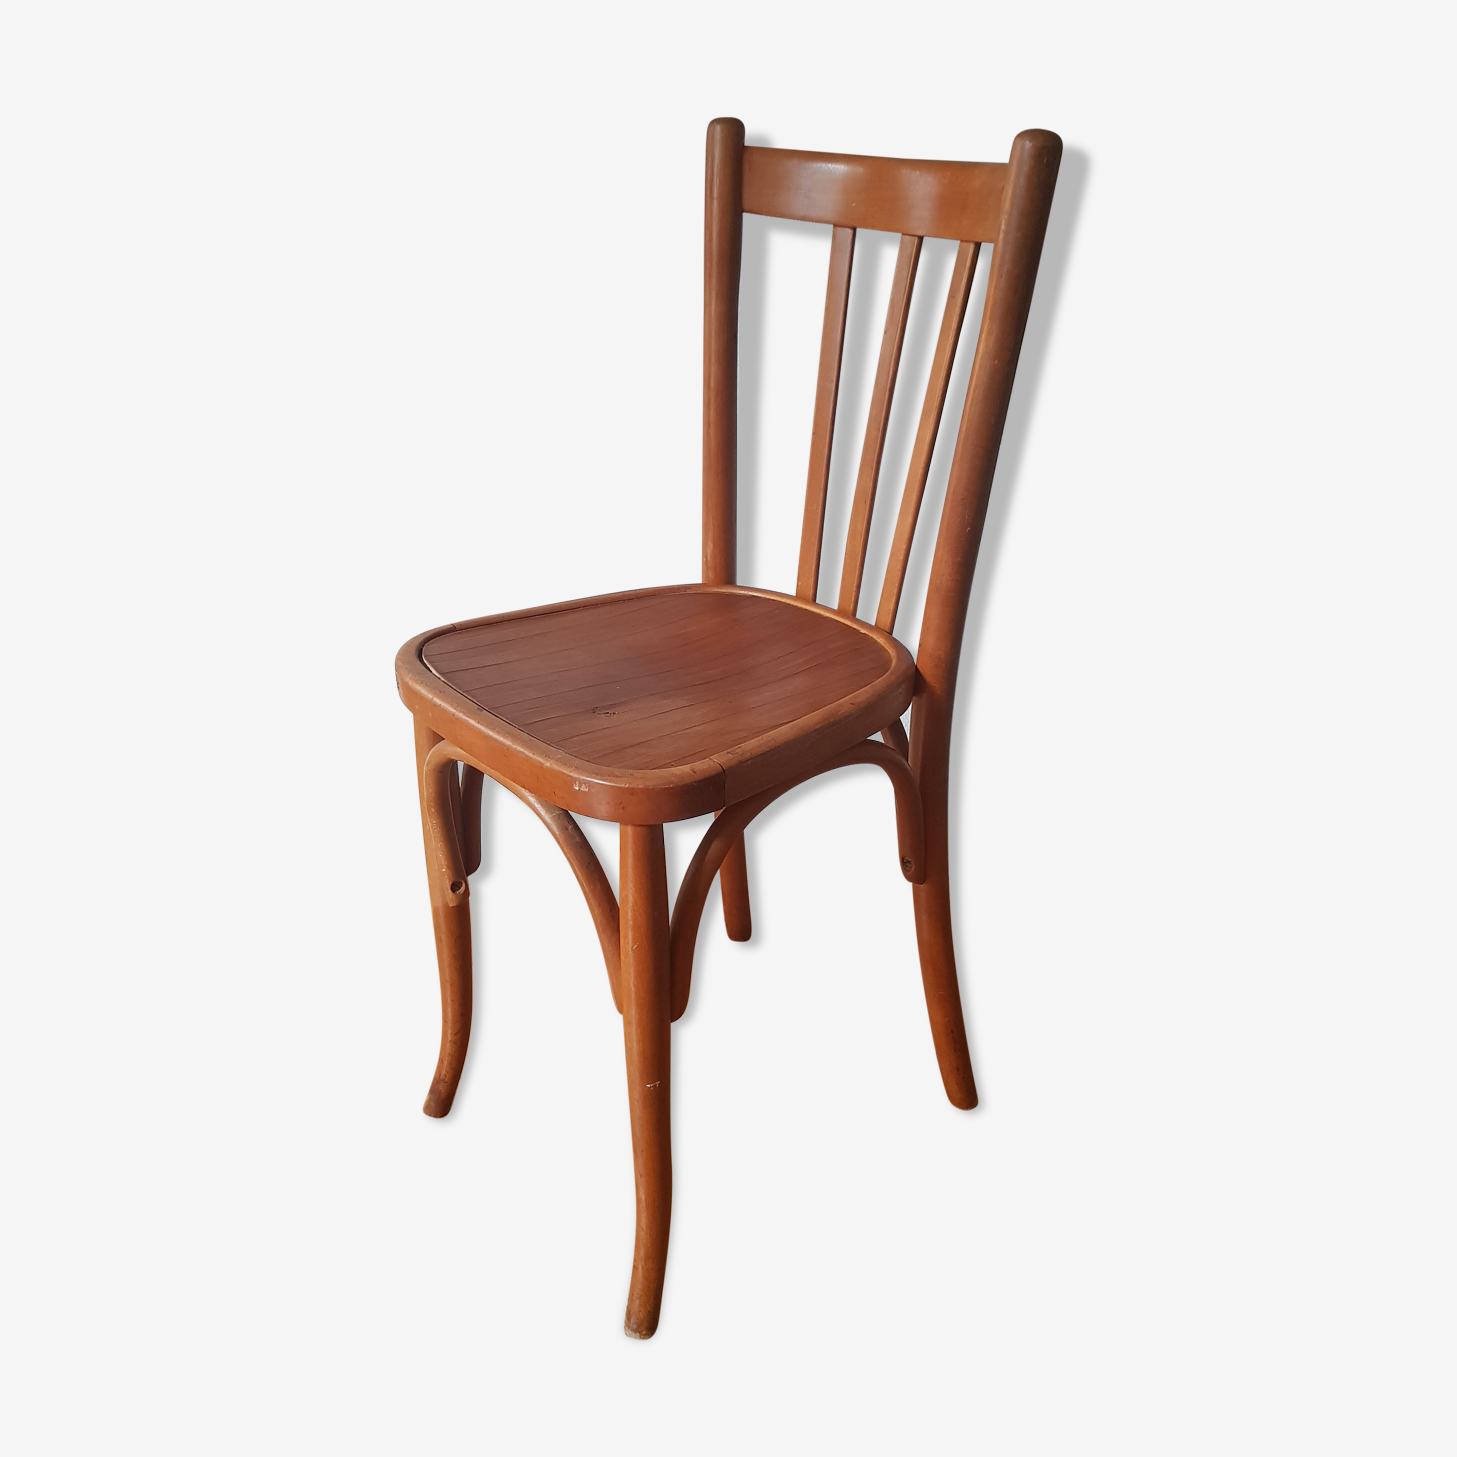 Vintage signed Mahieu bistro chair